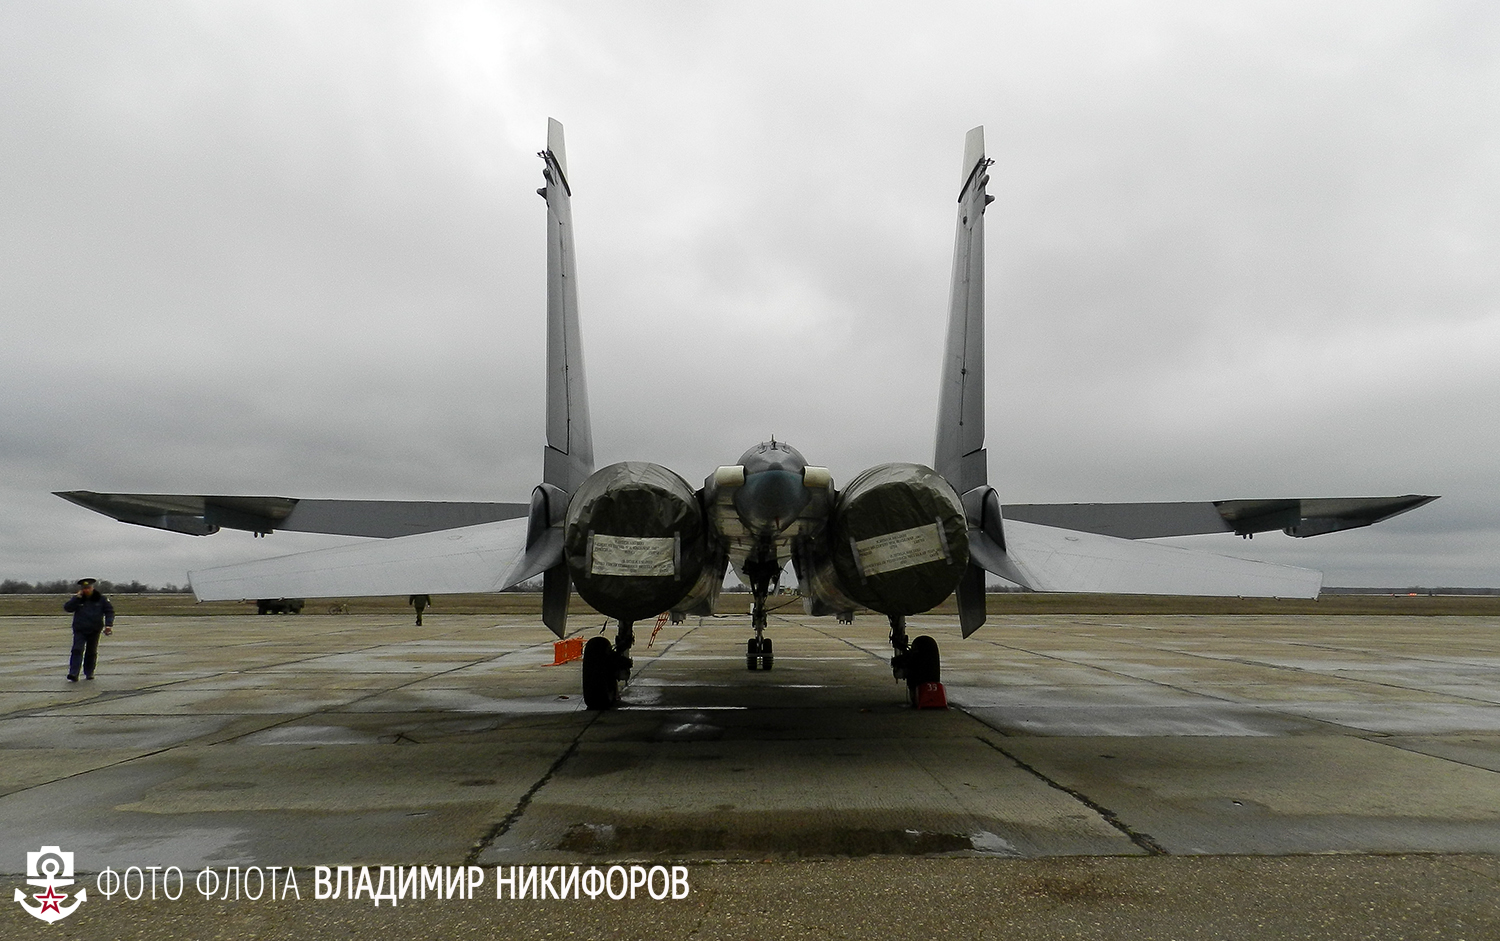 SU-30MKI (Flanker H by NATO). 0_d1c38_9ba9c3be_orig